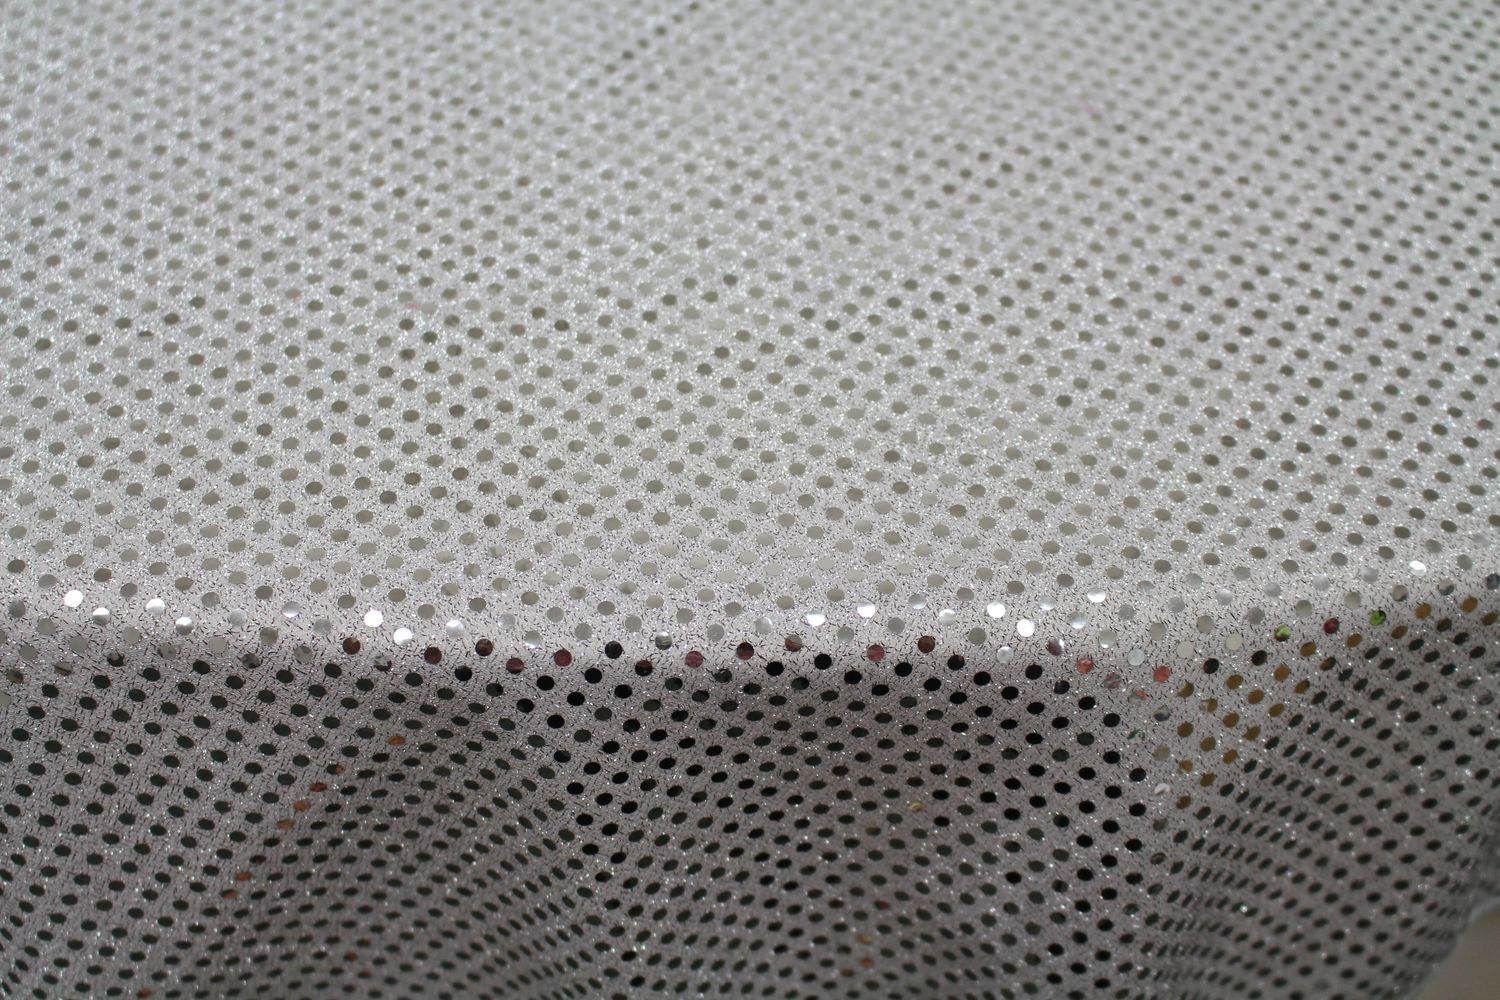 Silver 3MM Sequins